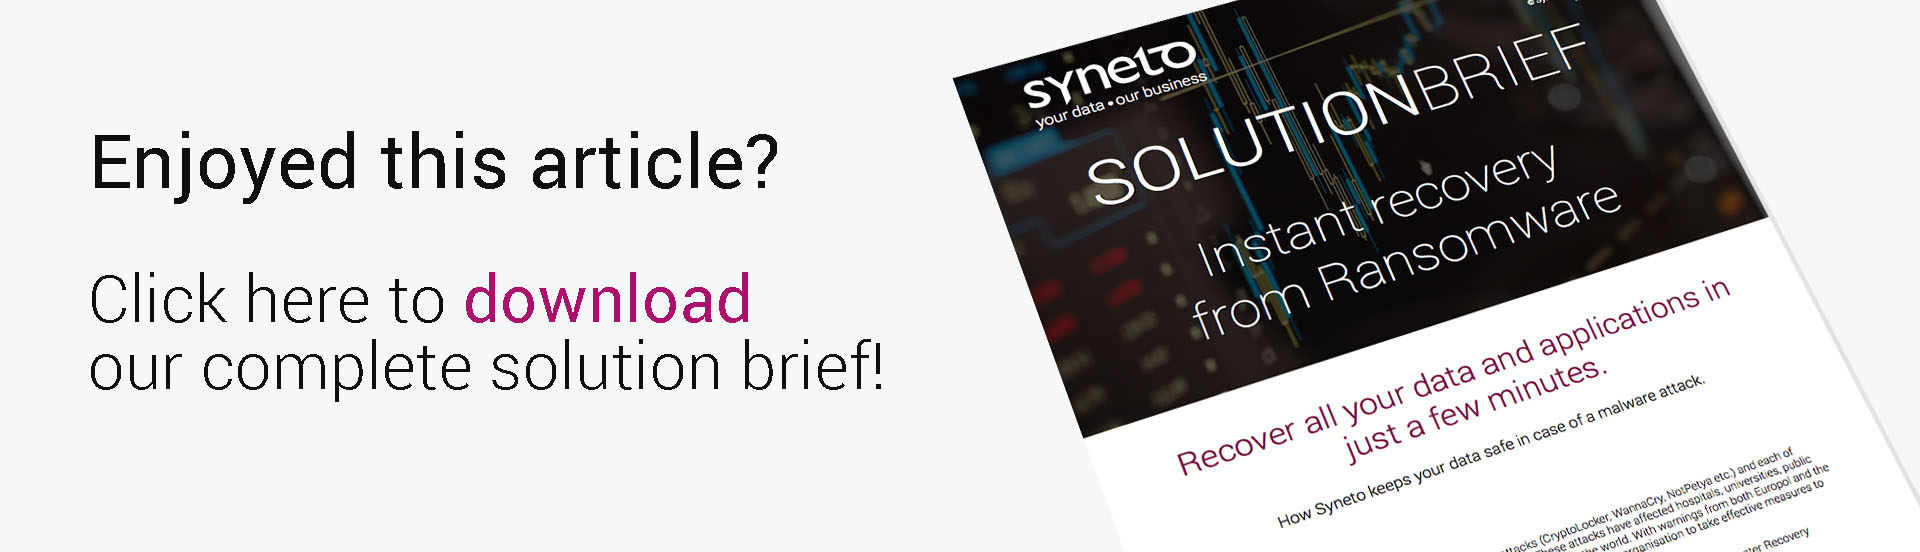 Syneto solution to ransomware solution brief